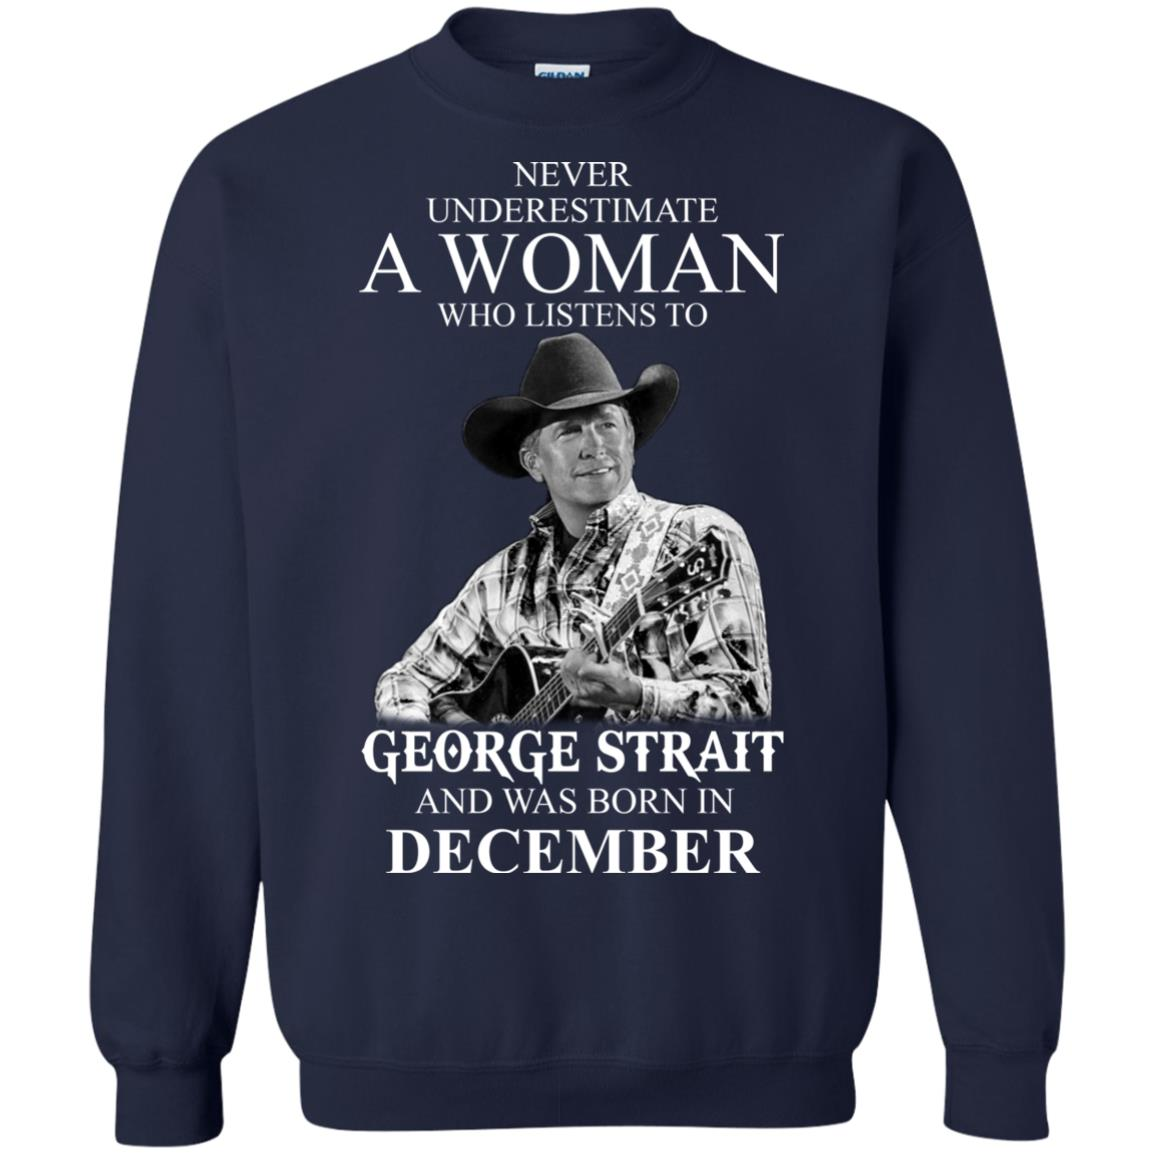 image 345 - Never Underestimate A Woman Who Listens To George Strait And Was Born In December shirt